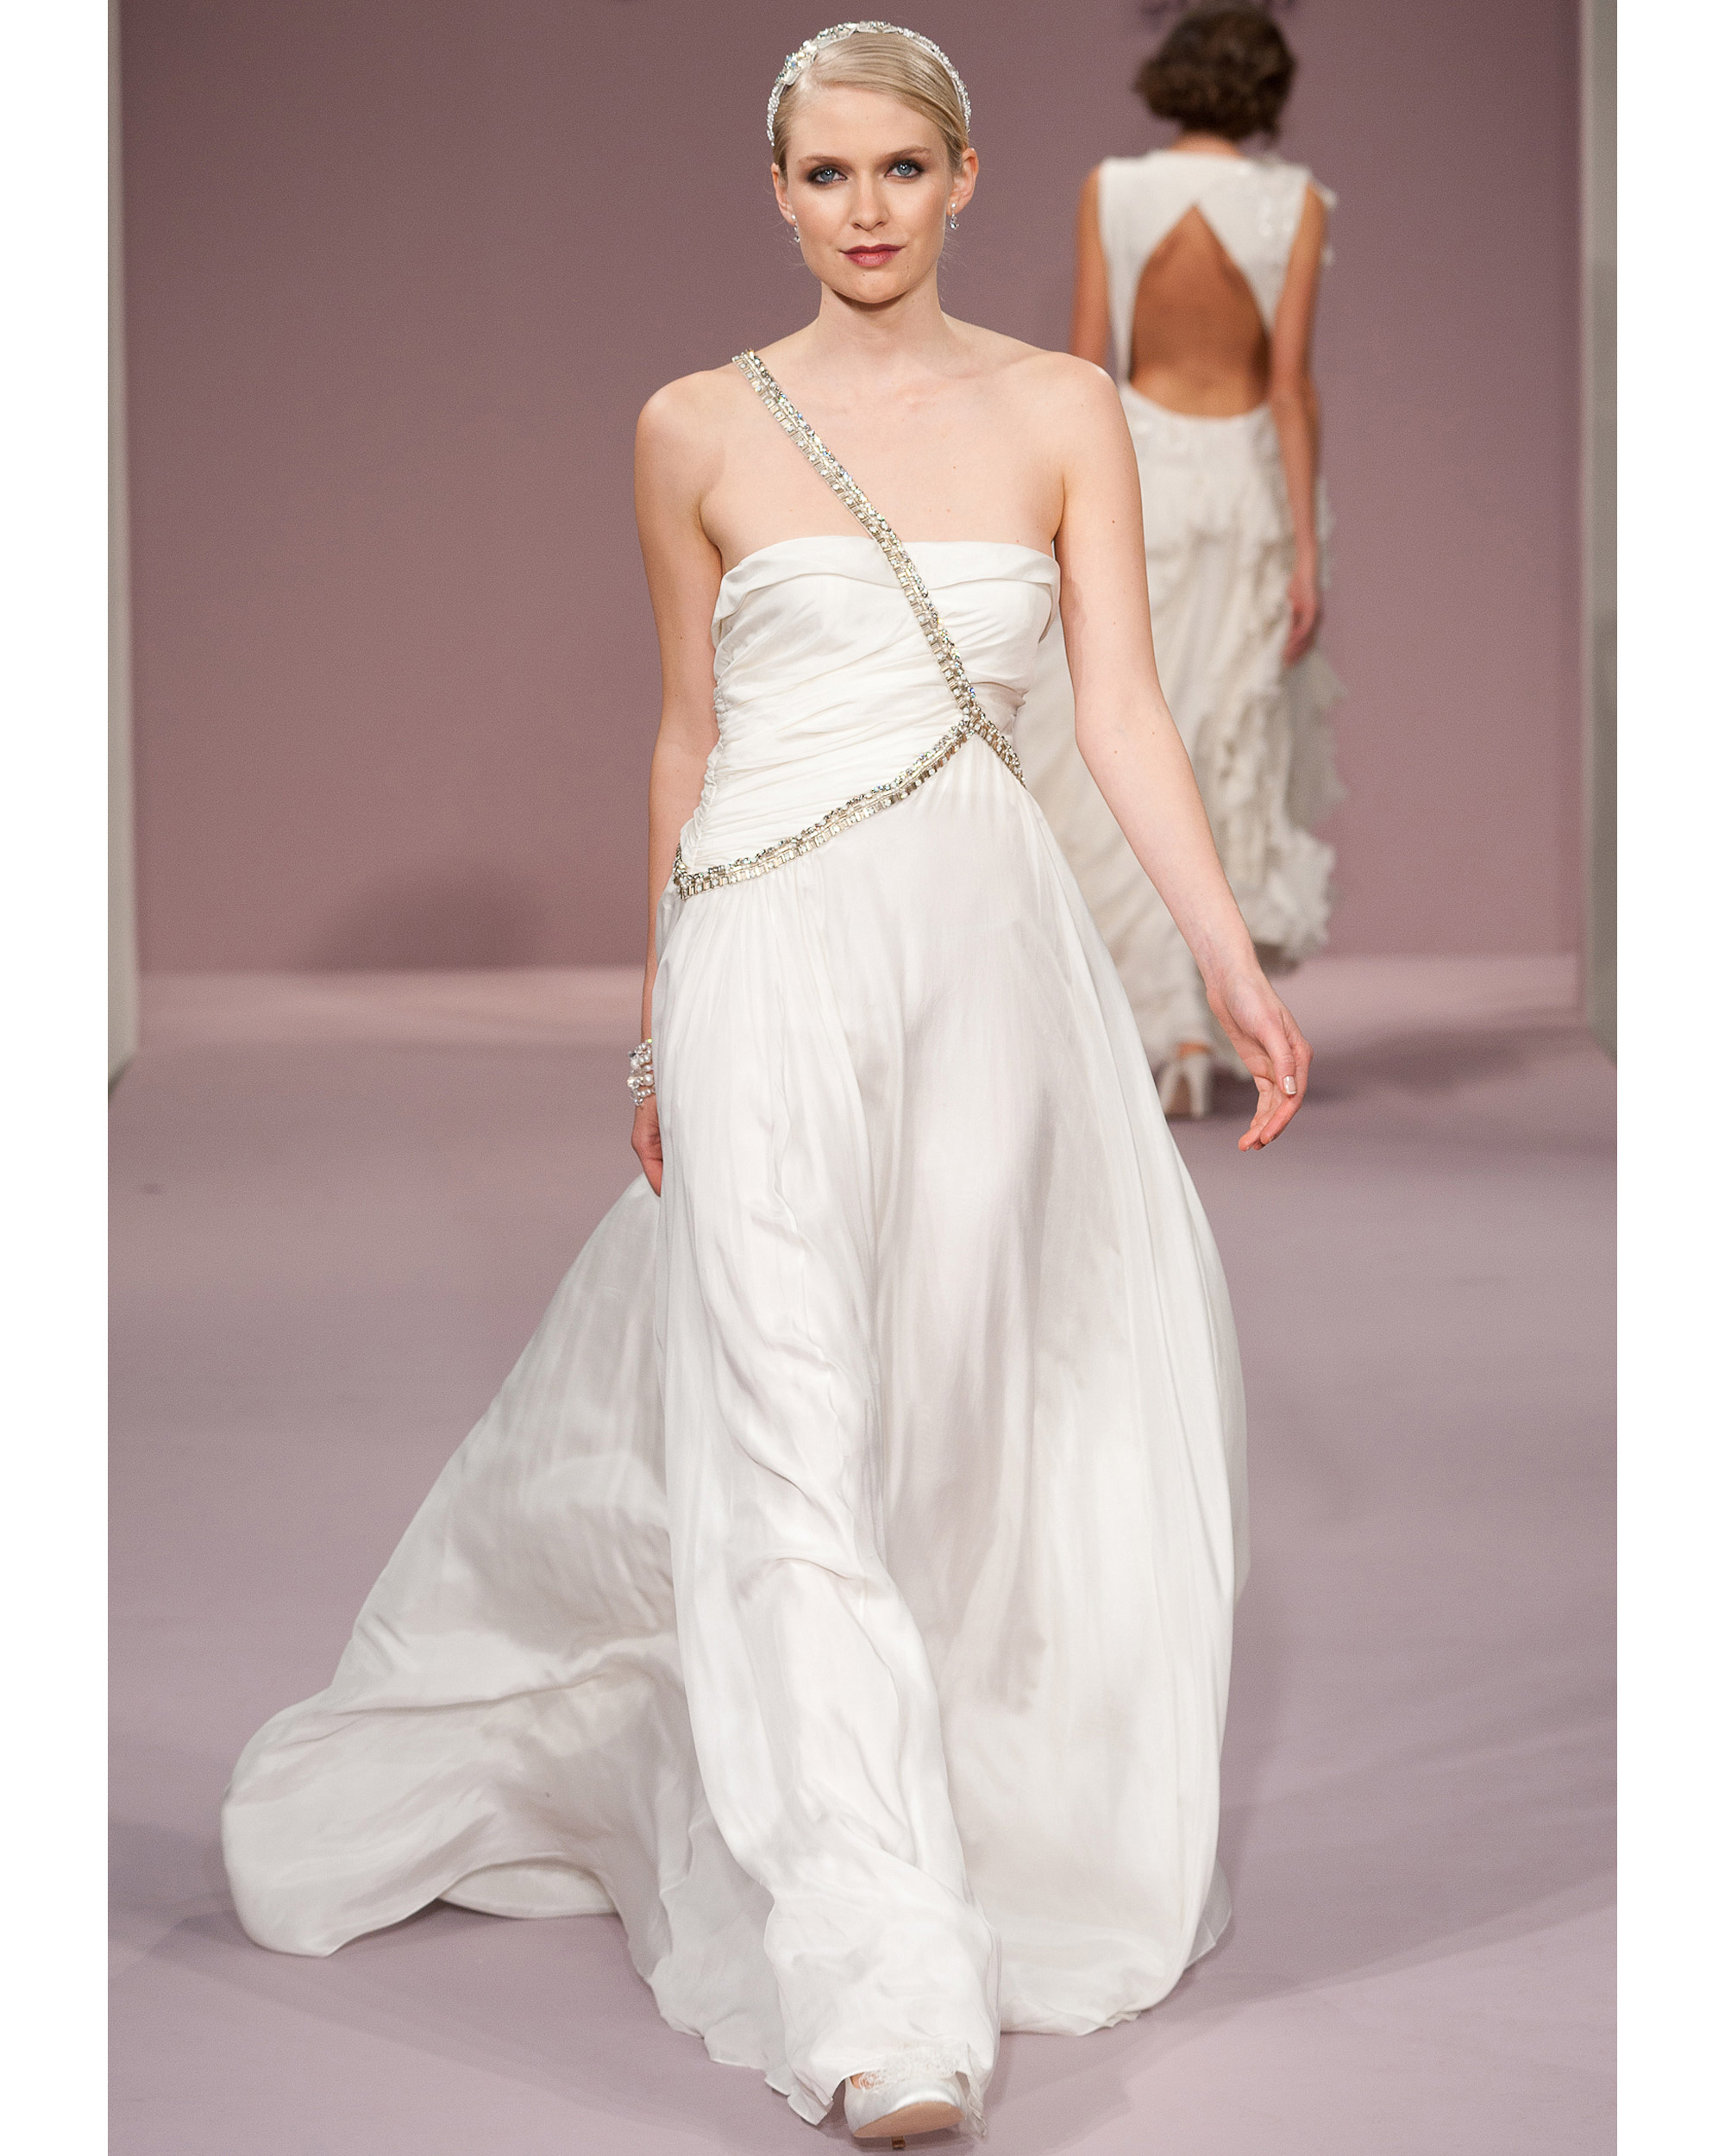 matthew-williamson-fall2012-wd108109-006.jpg